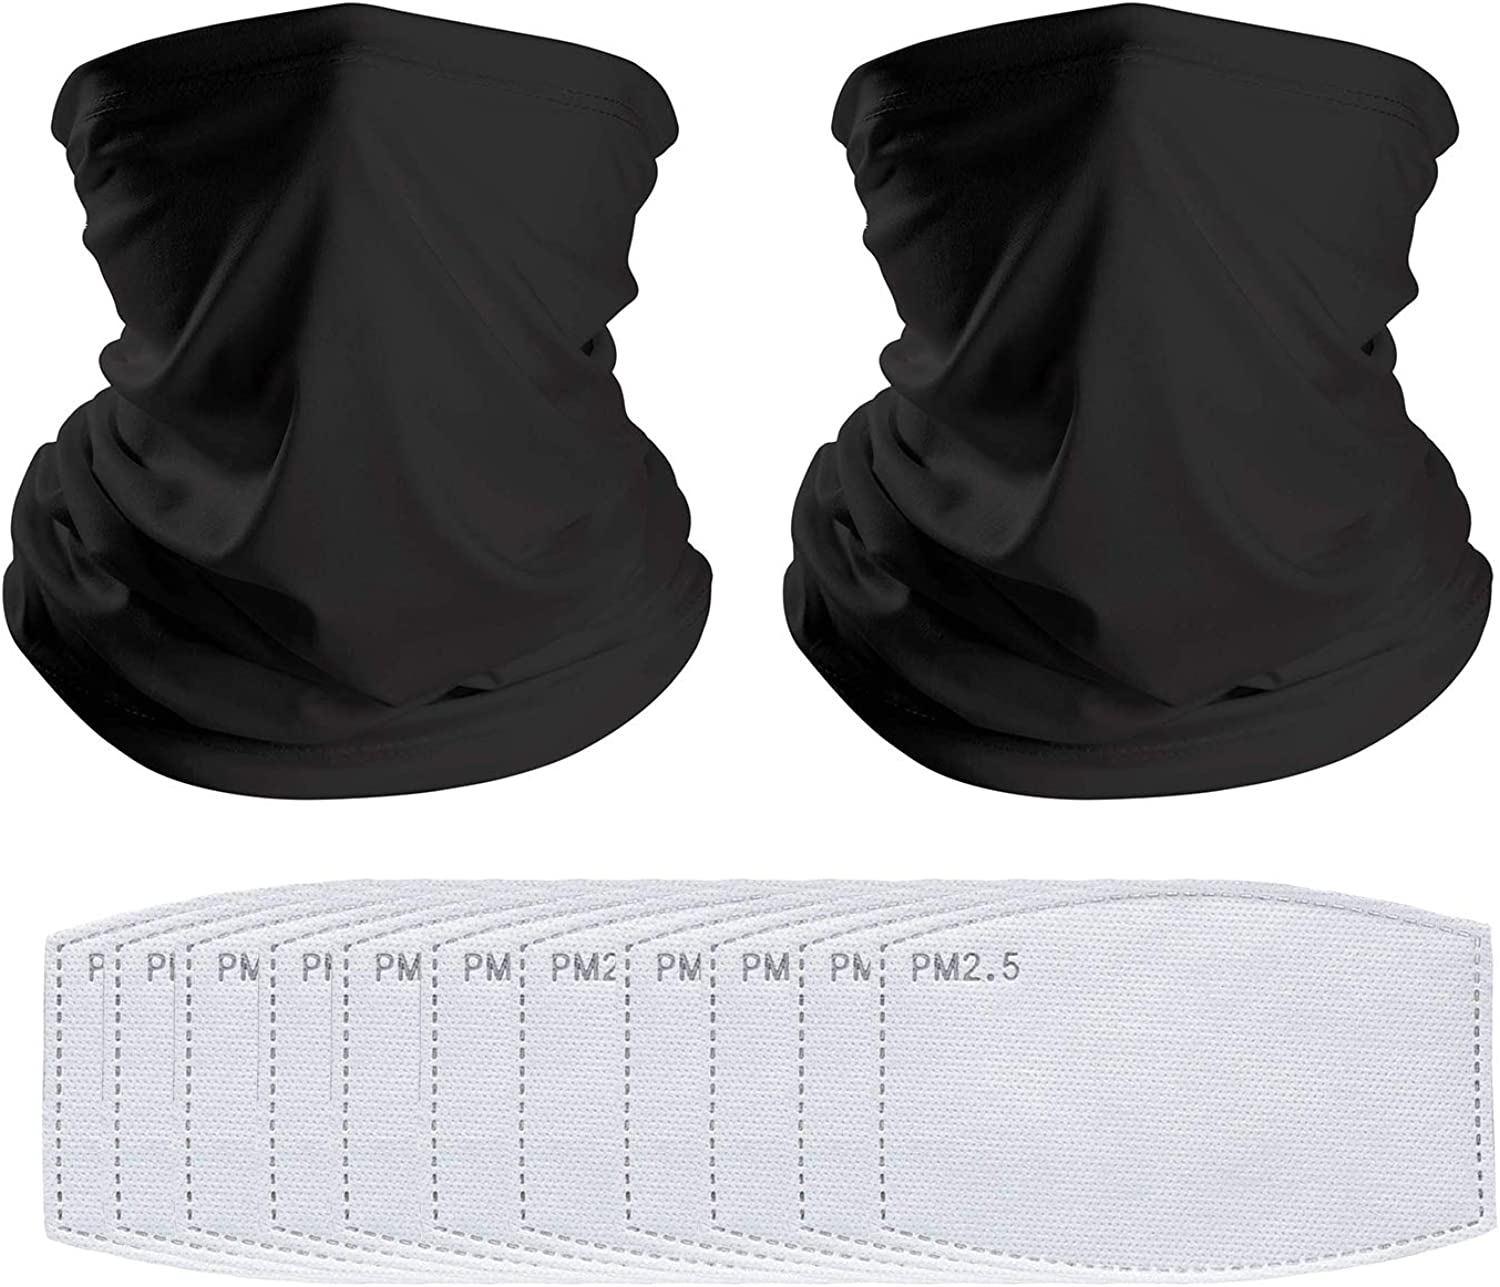 NiUB5 Neck Gaiter Multi-Purpose Bandana Balaclava Face Covering Headwear with PM 2.5 Activated Carbon Filter for Outdoor Sports Unisex Set of 10 PCS Filters + 2 PCS Necks Gaiter (Black)